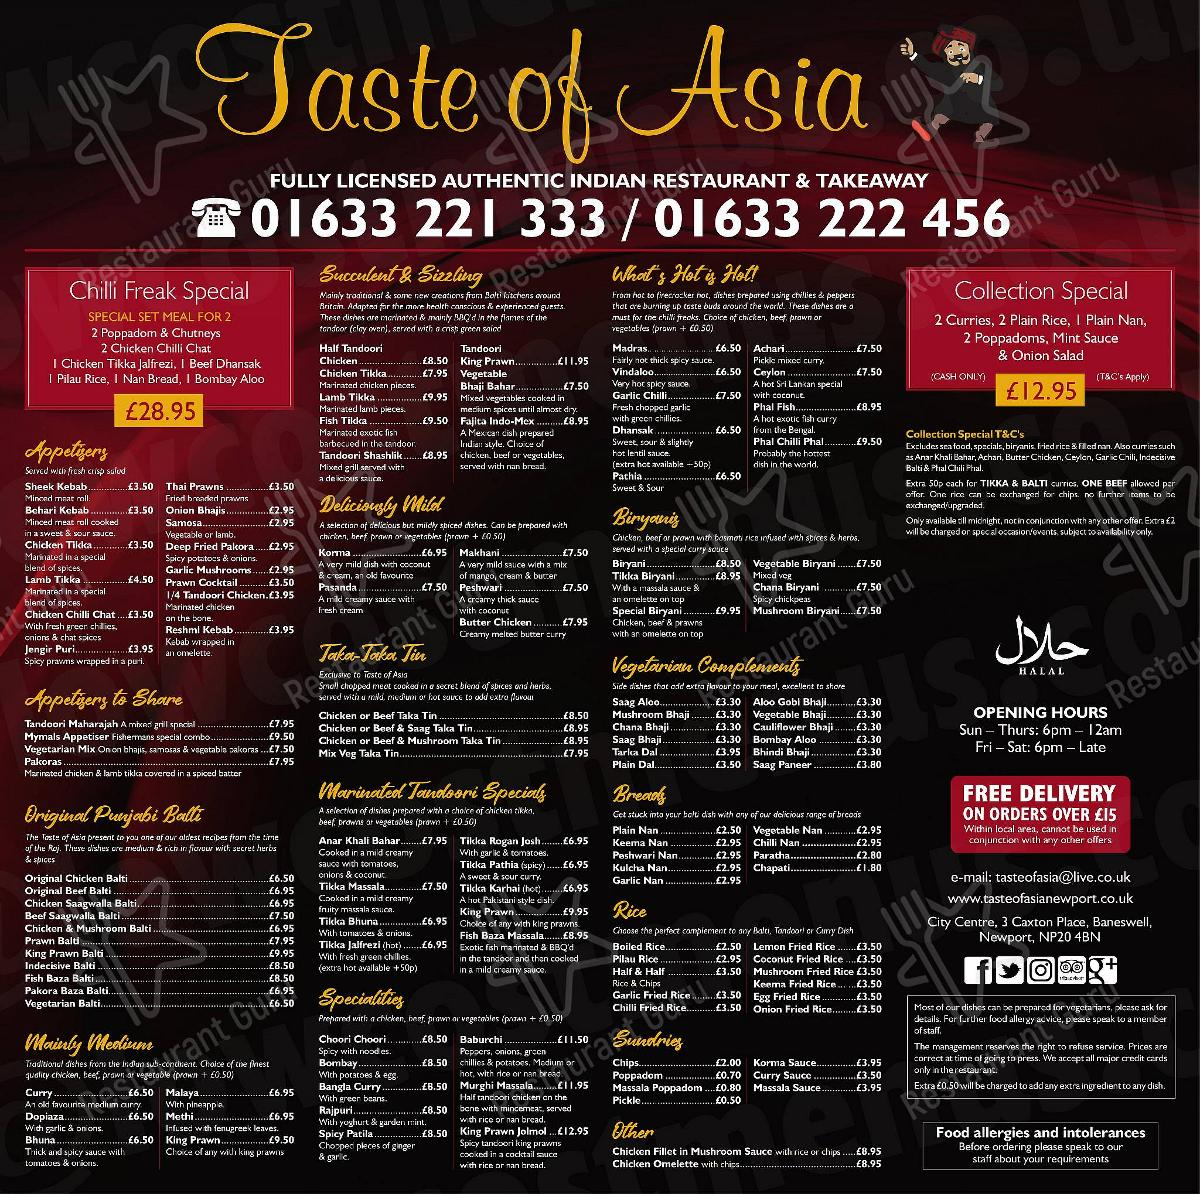 Taste of Asia menu - dishes and beverages